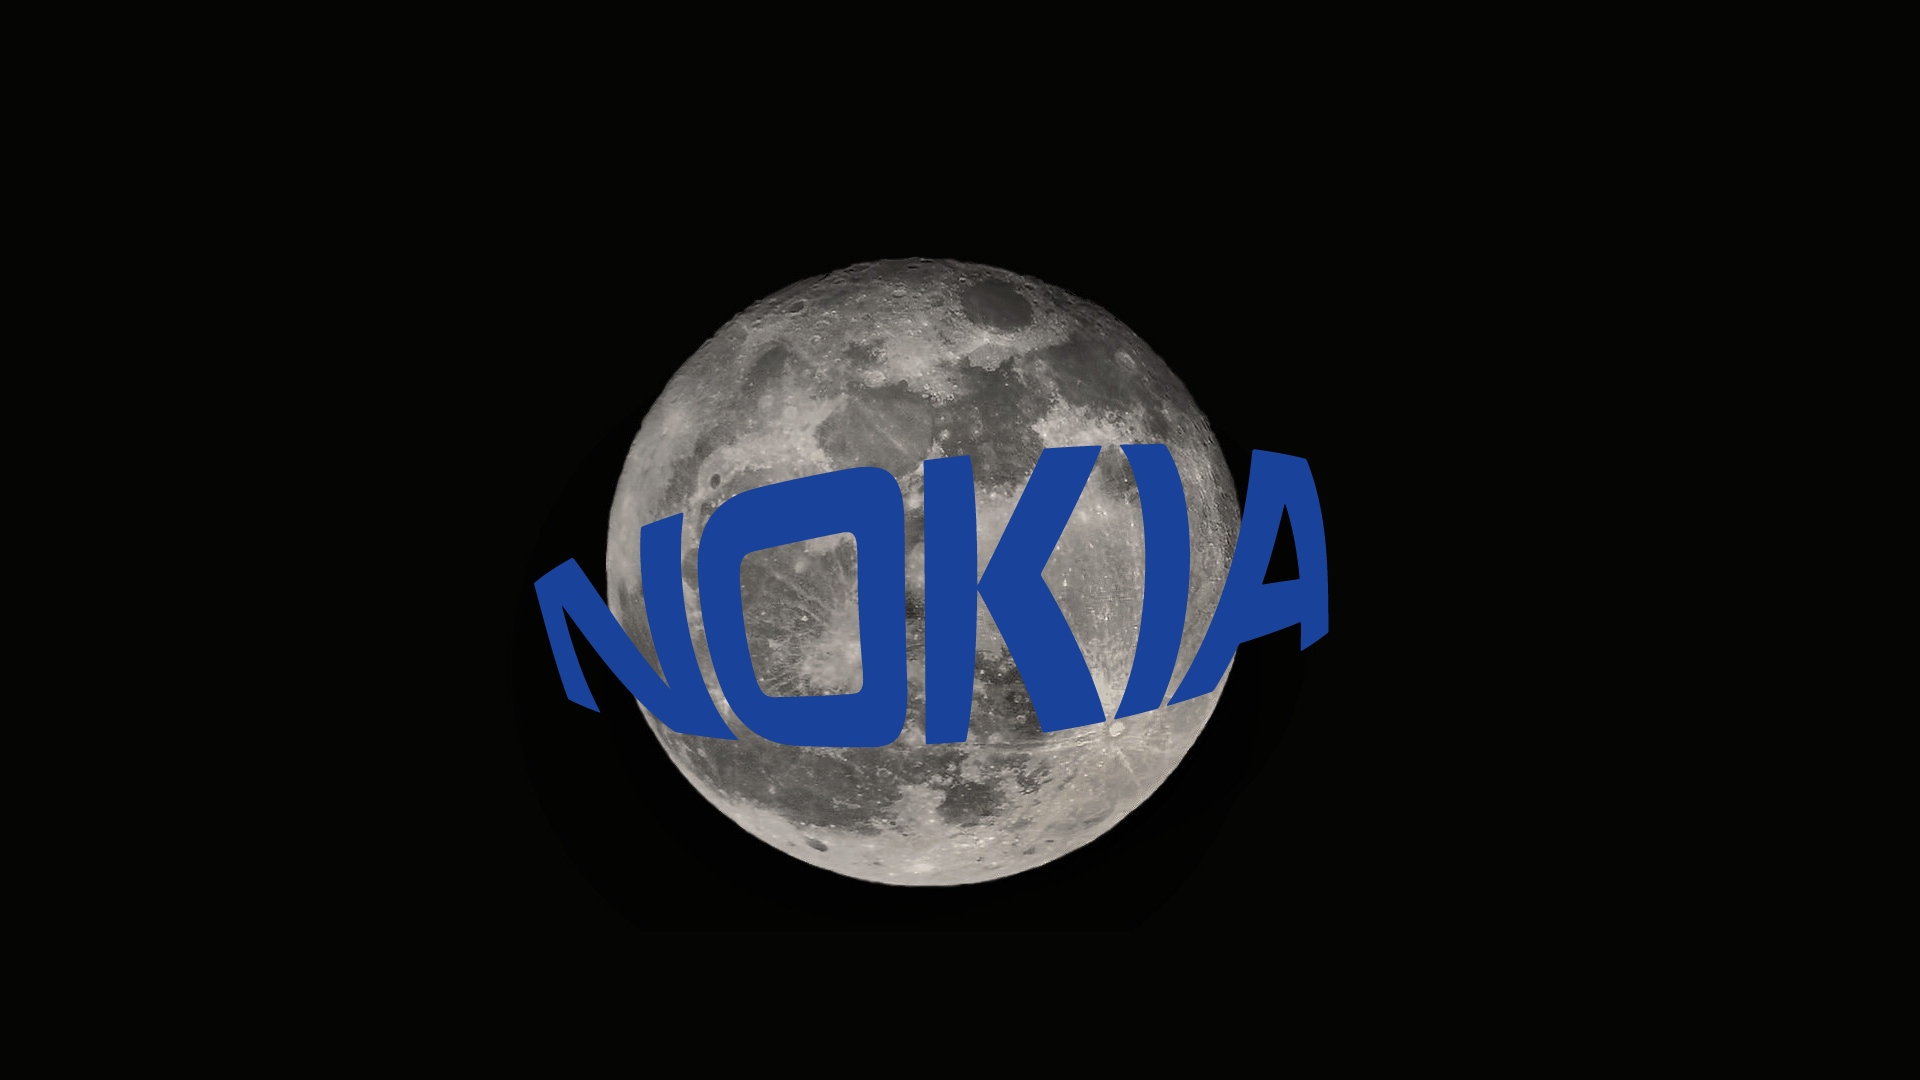 NASA just gave Nokia millions of dollars to upgrade the moon's cell service